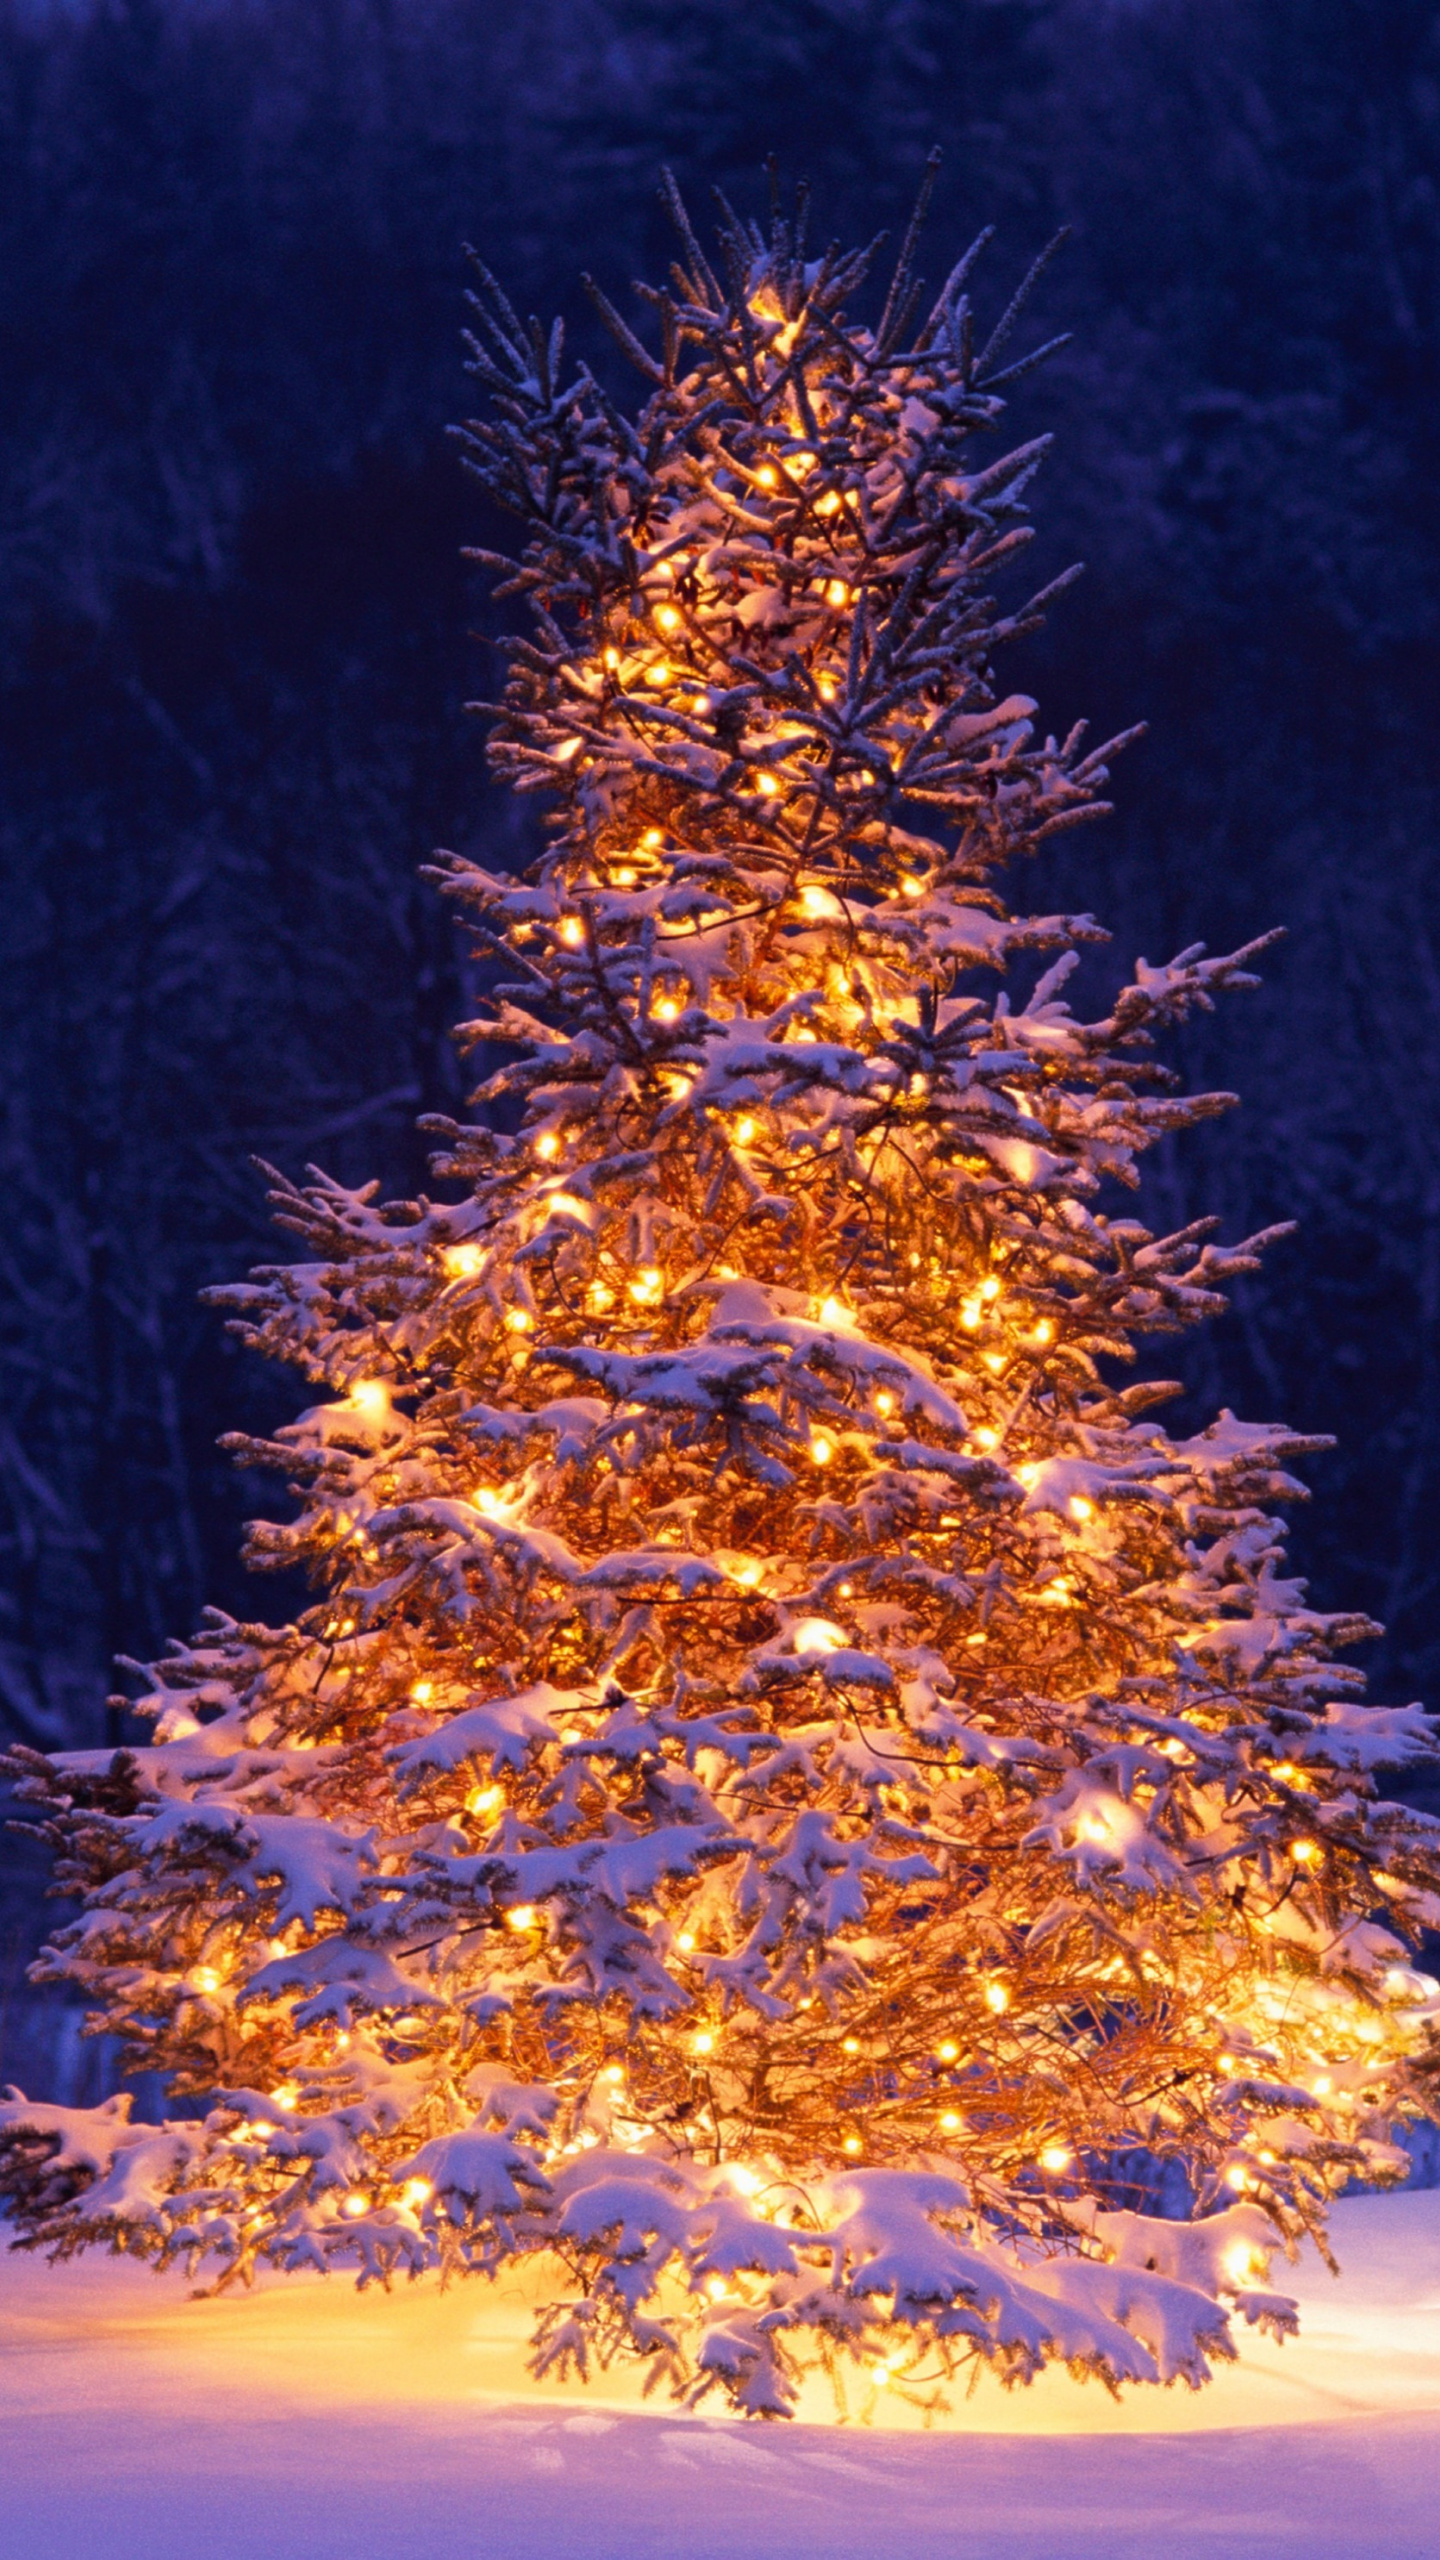 Christmas Tree, Chairs, Winter, Christmas, 2017, Holiday, - Christmas Tree Iphone Background - HD Wallpaper